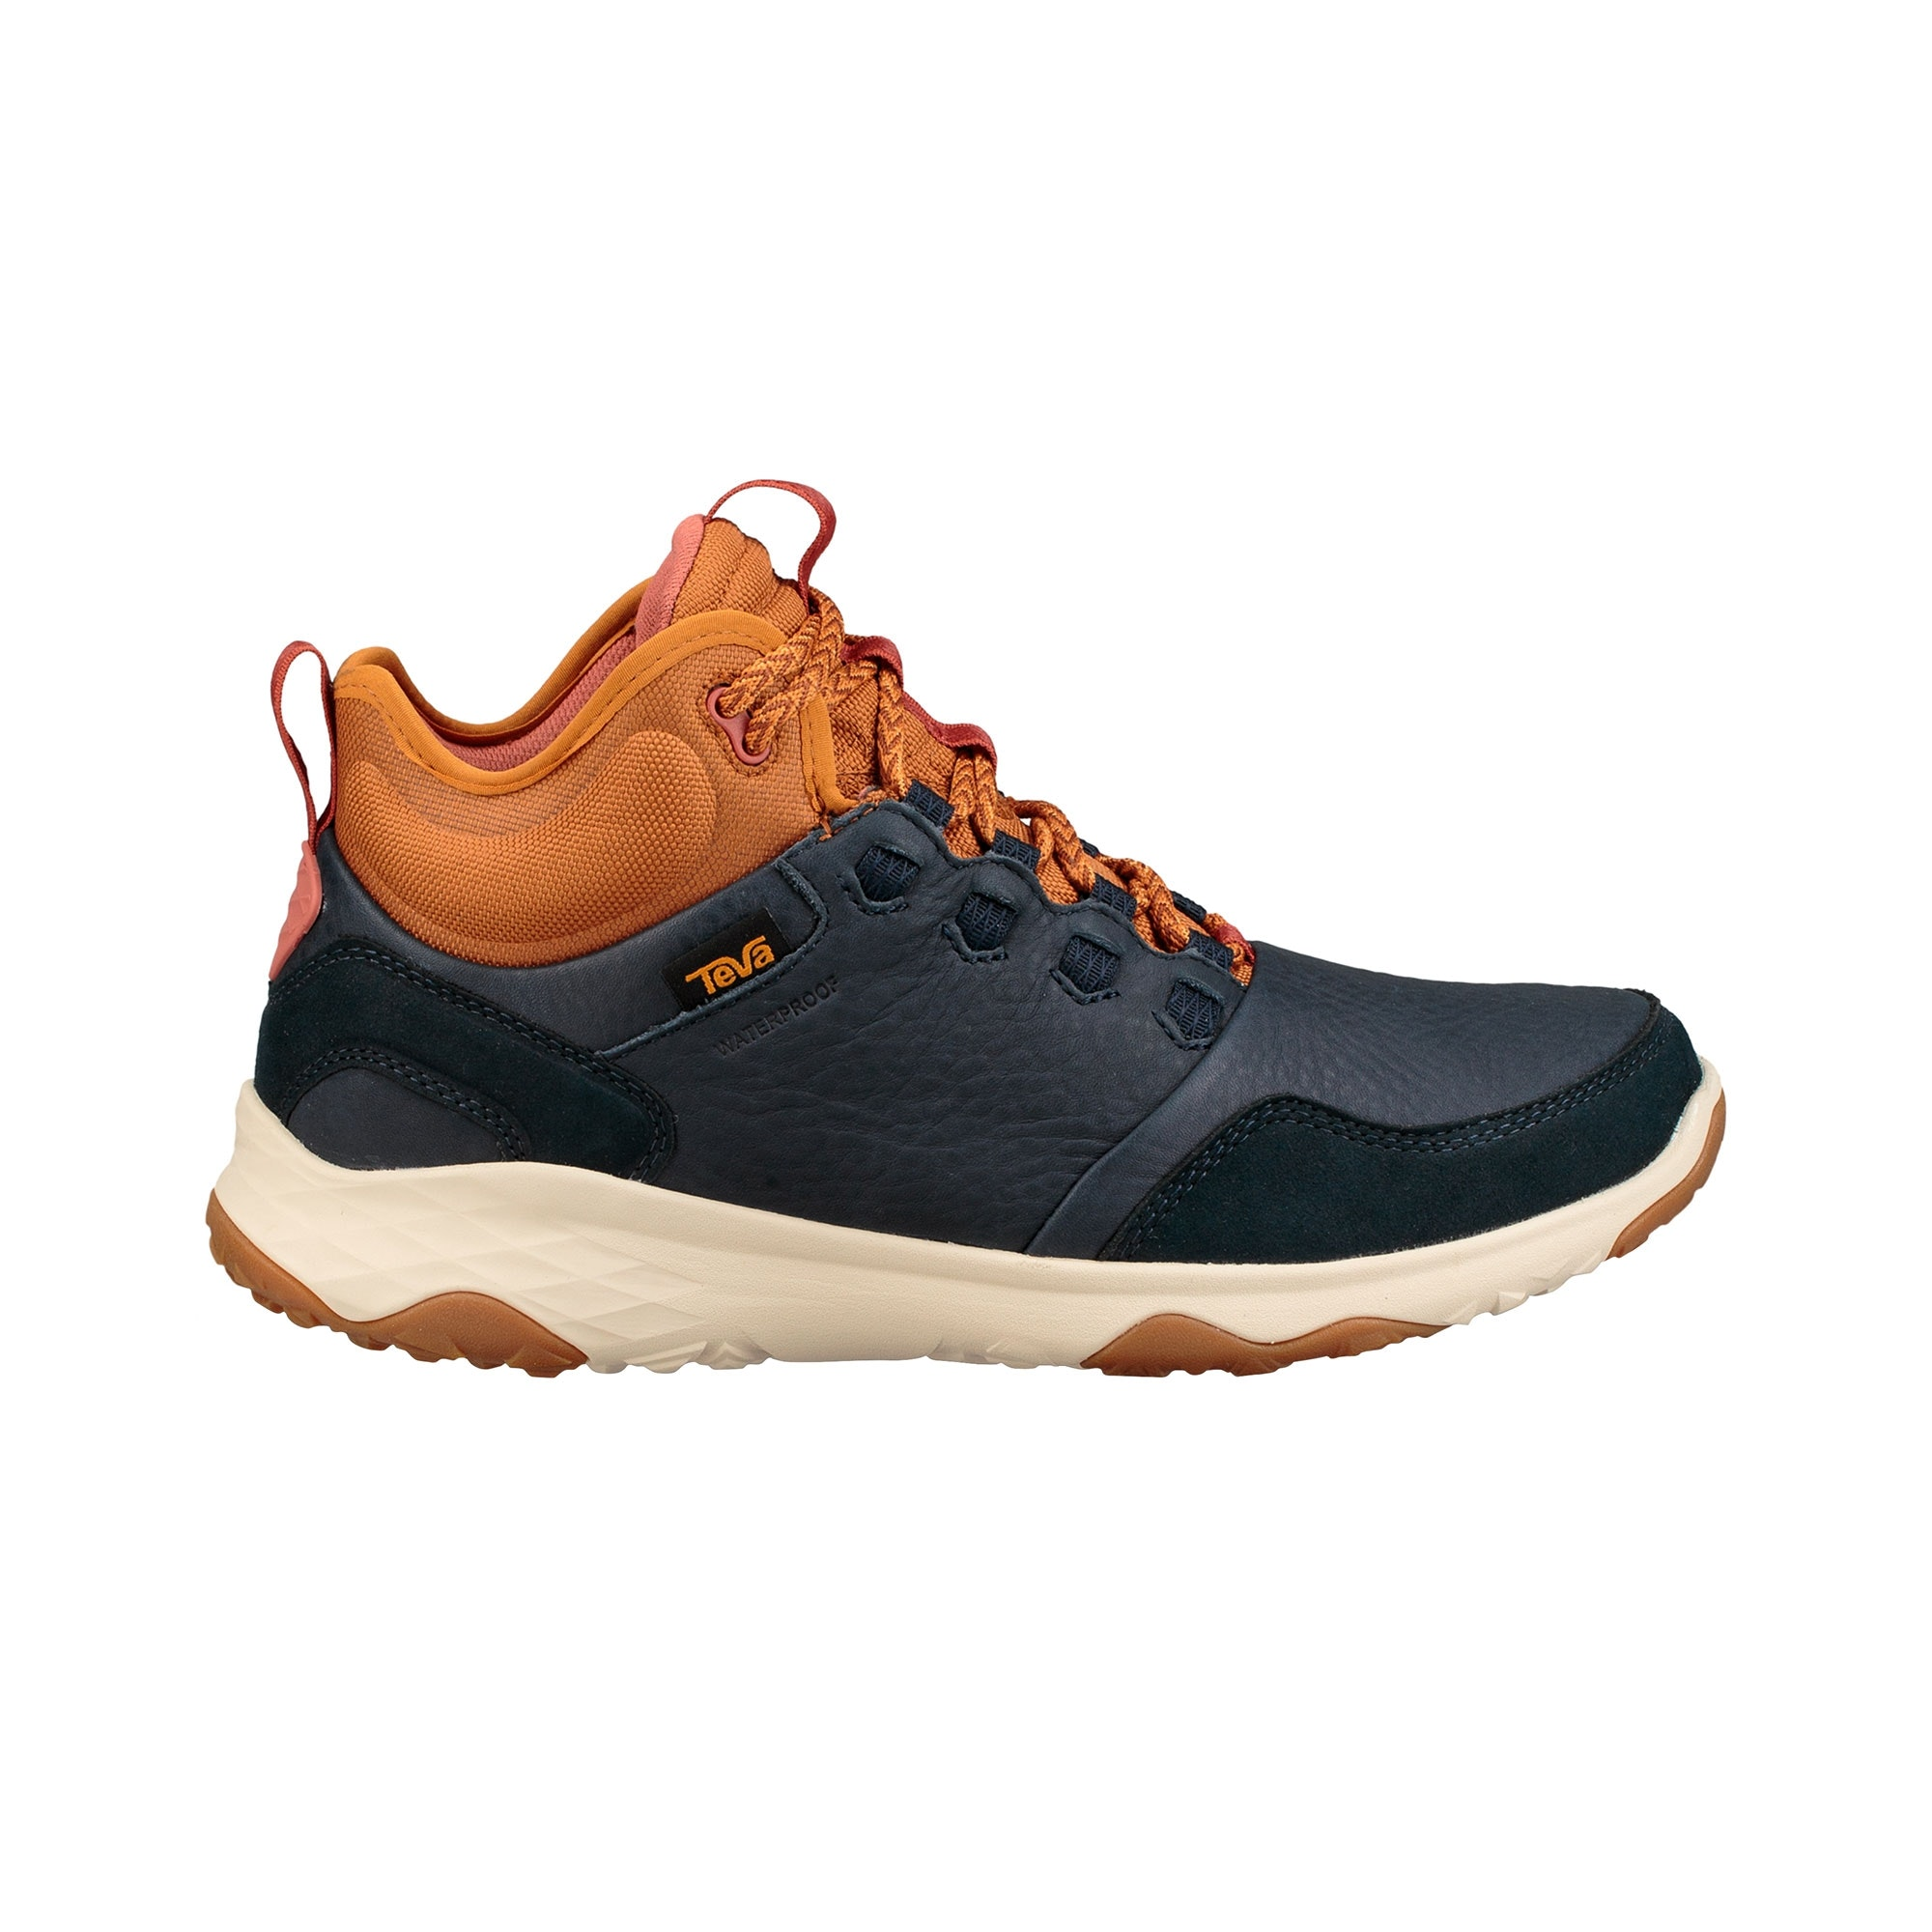 Sneakers Men Hiking Shoes For Men Explore Sneakers Waterproof Outdoor Sports Shoes Trail Track Cross Country Fitness Shoes